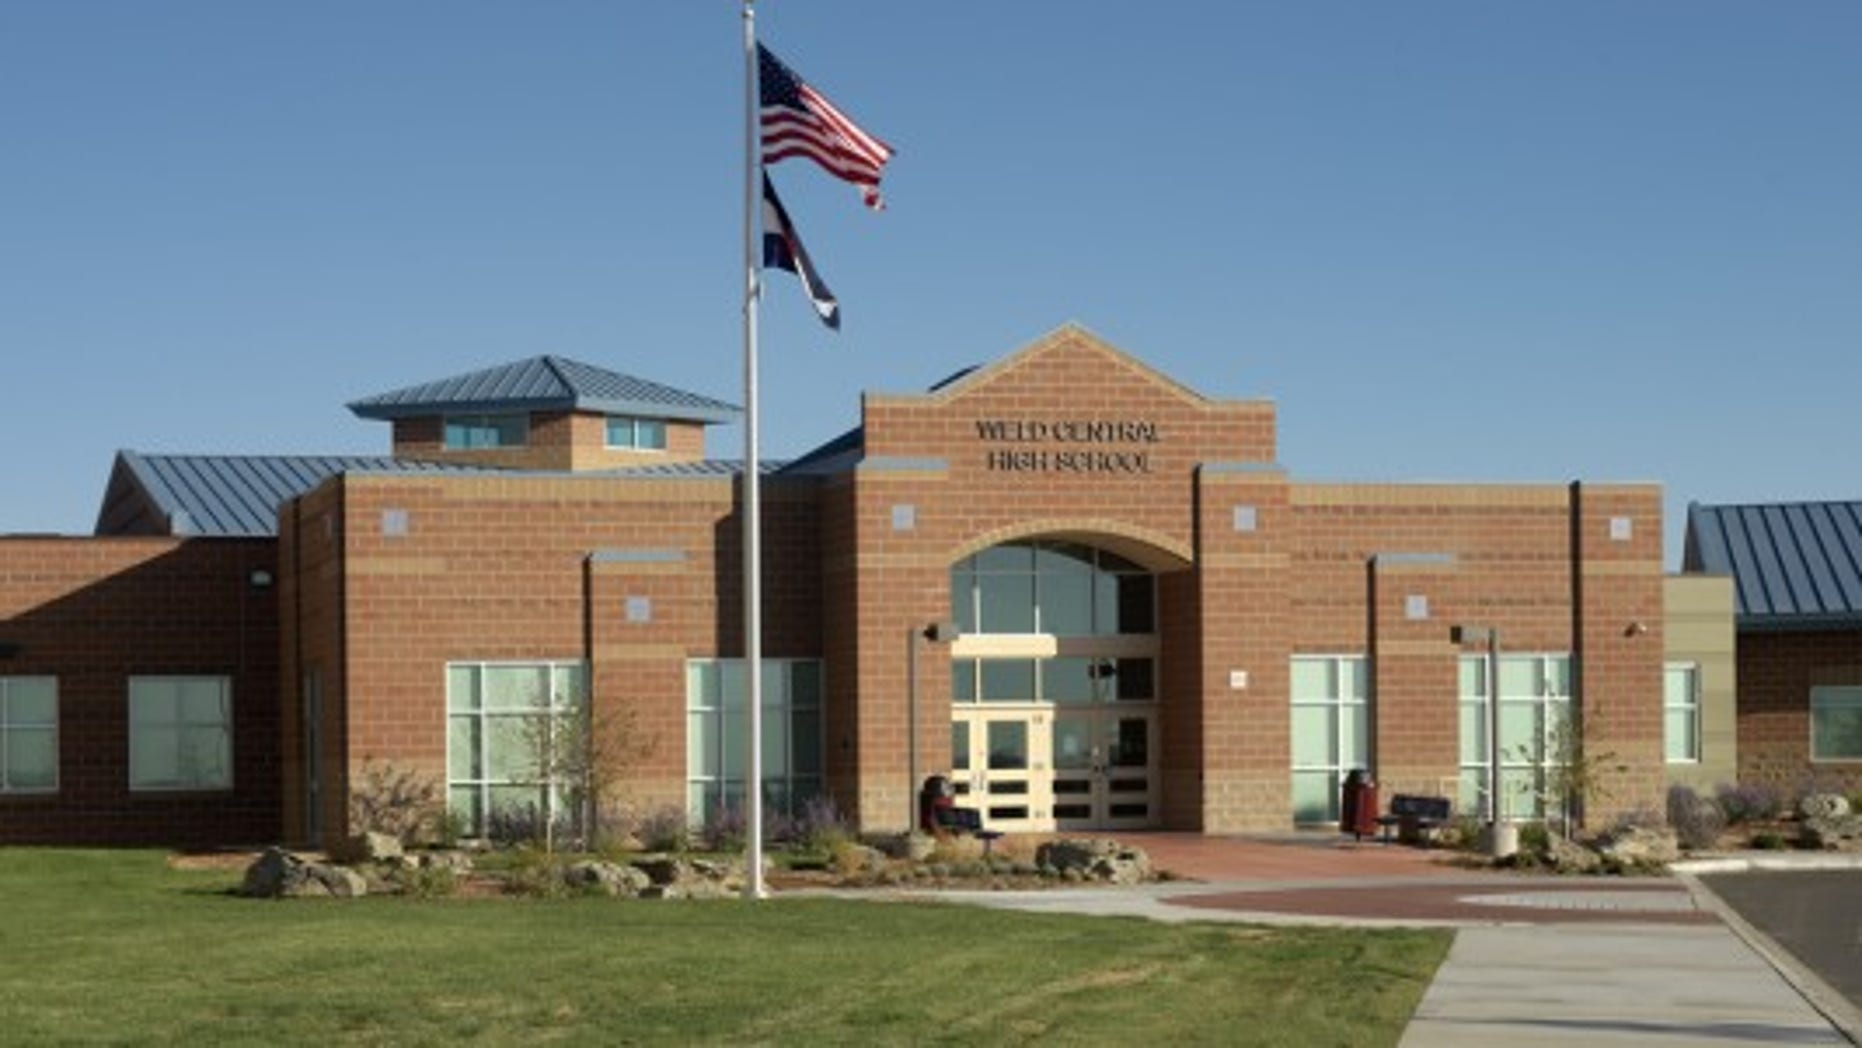 The main entrance to Weld Central High School, which has a Rebel mascot, in Keenesburg, Colorado.